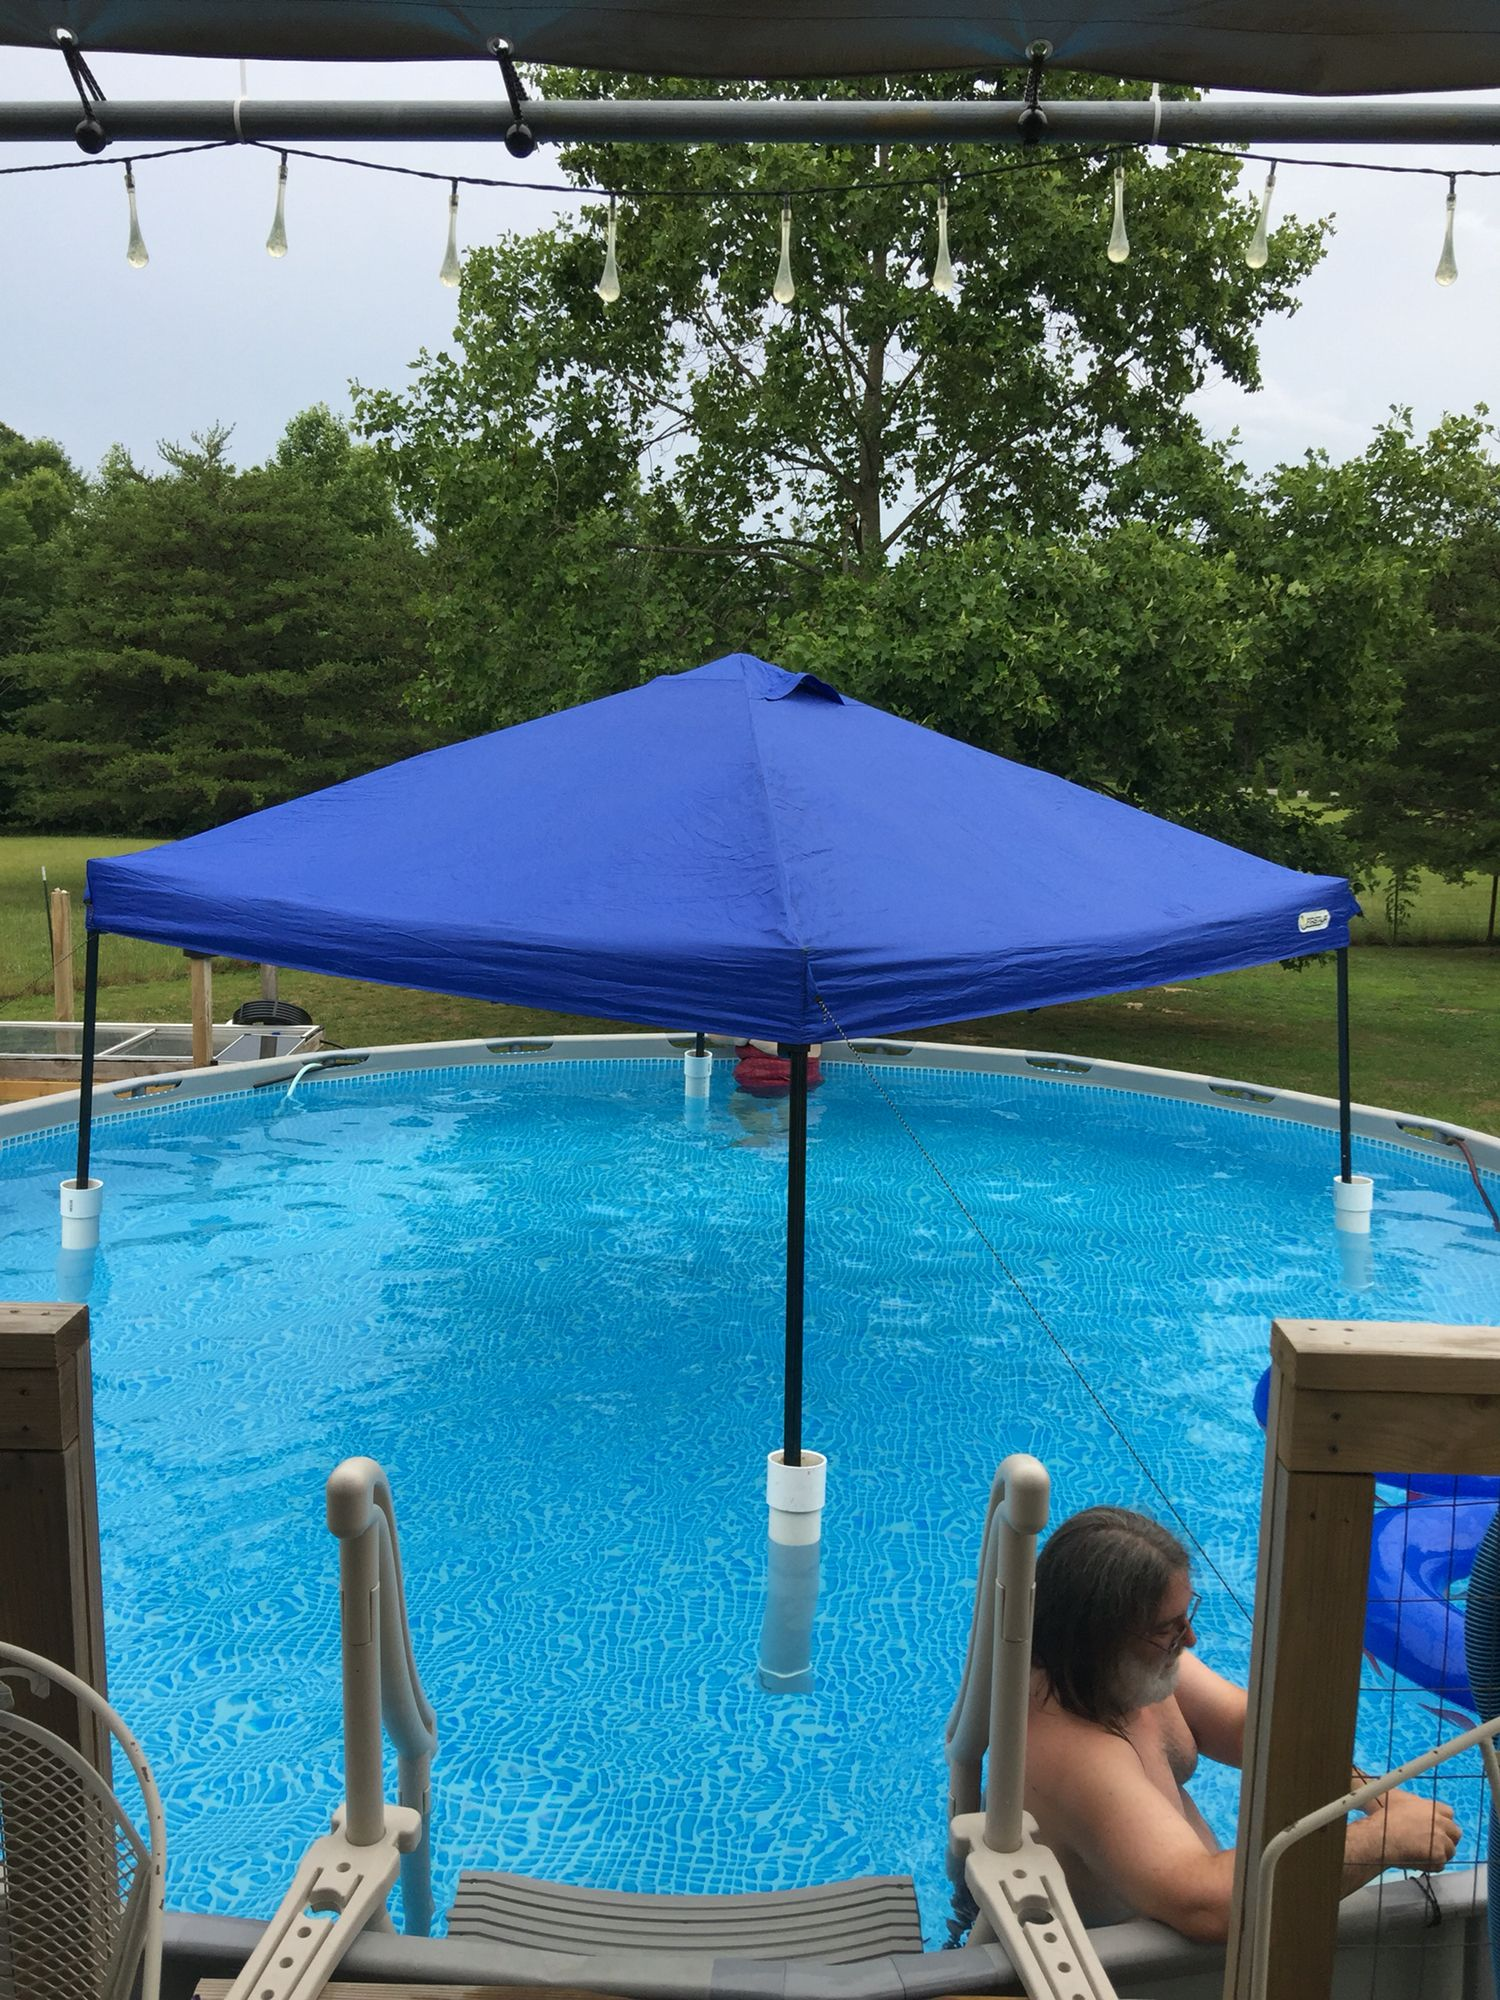 DIY floating canopy pool shade 2 long 4 PVC pipe capped on the